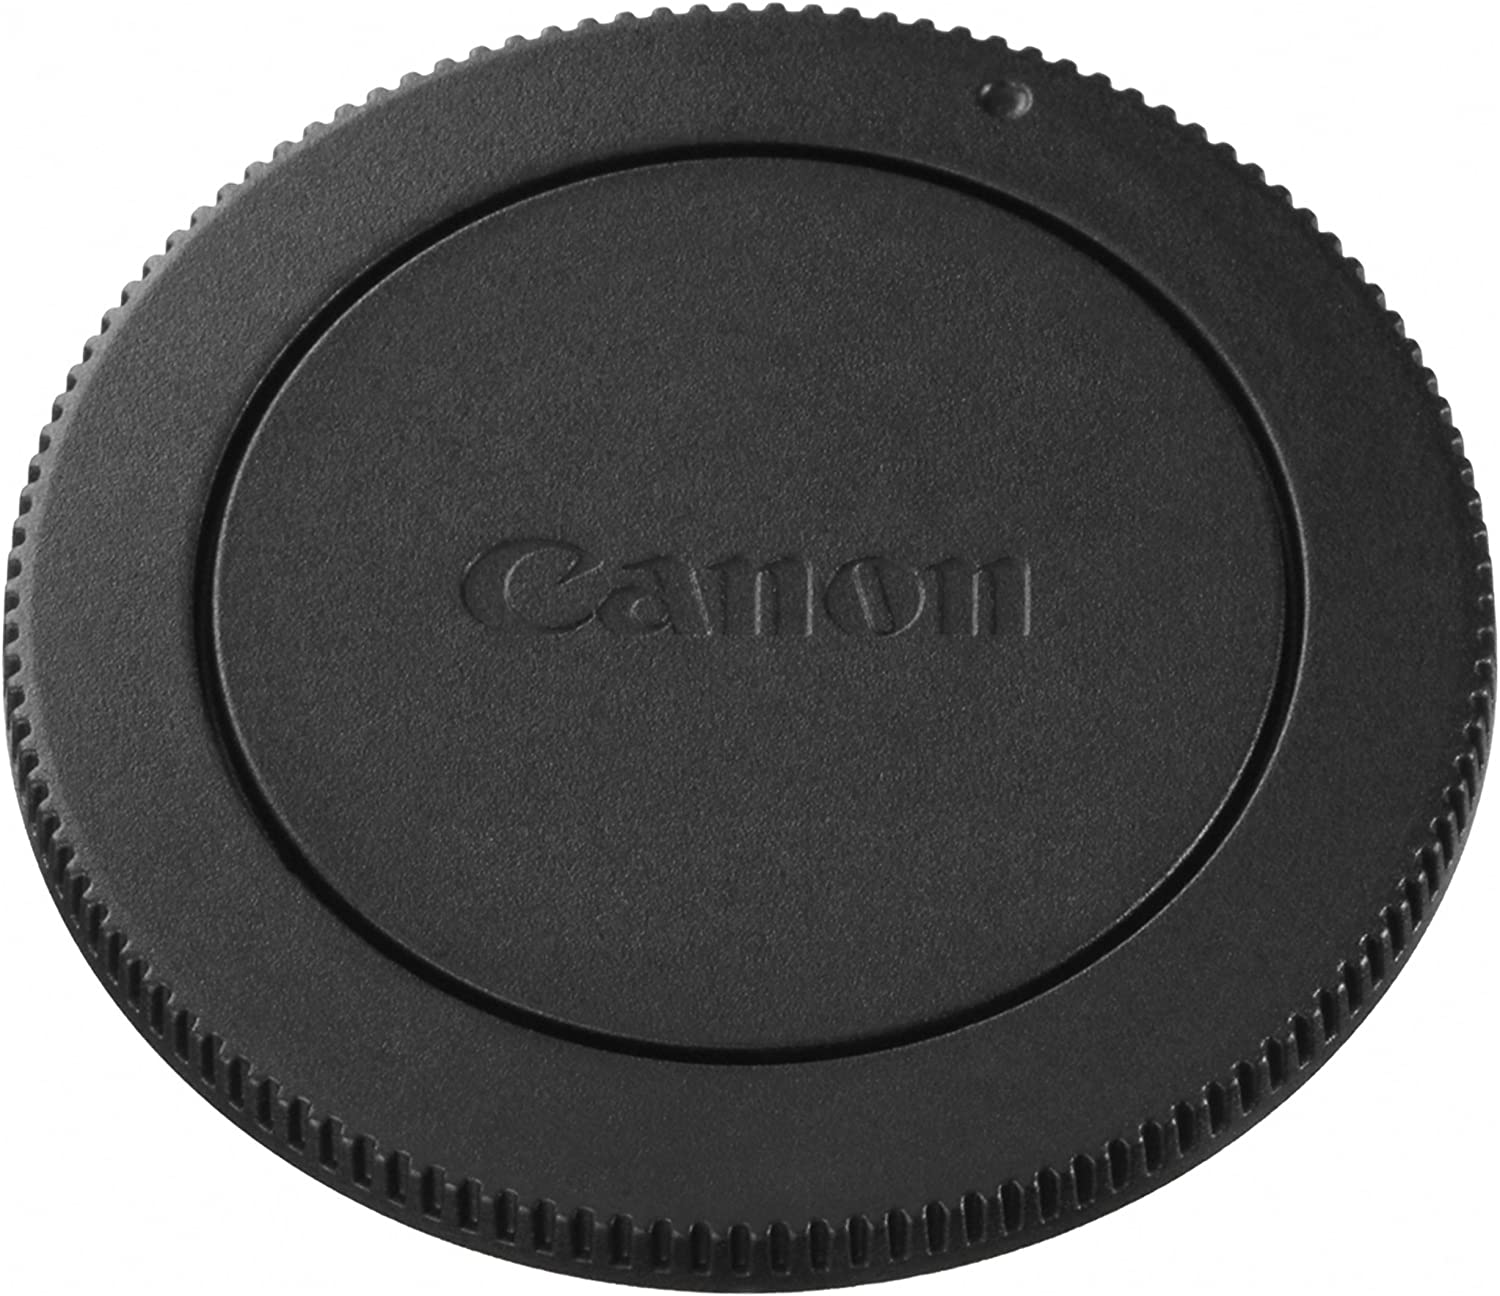 Canon CAMERA COVER R-F-4 FOR EOS M FOR EOS M 6786B001